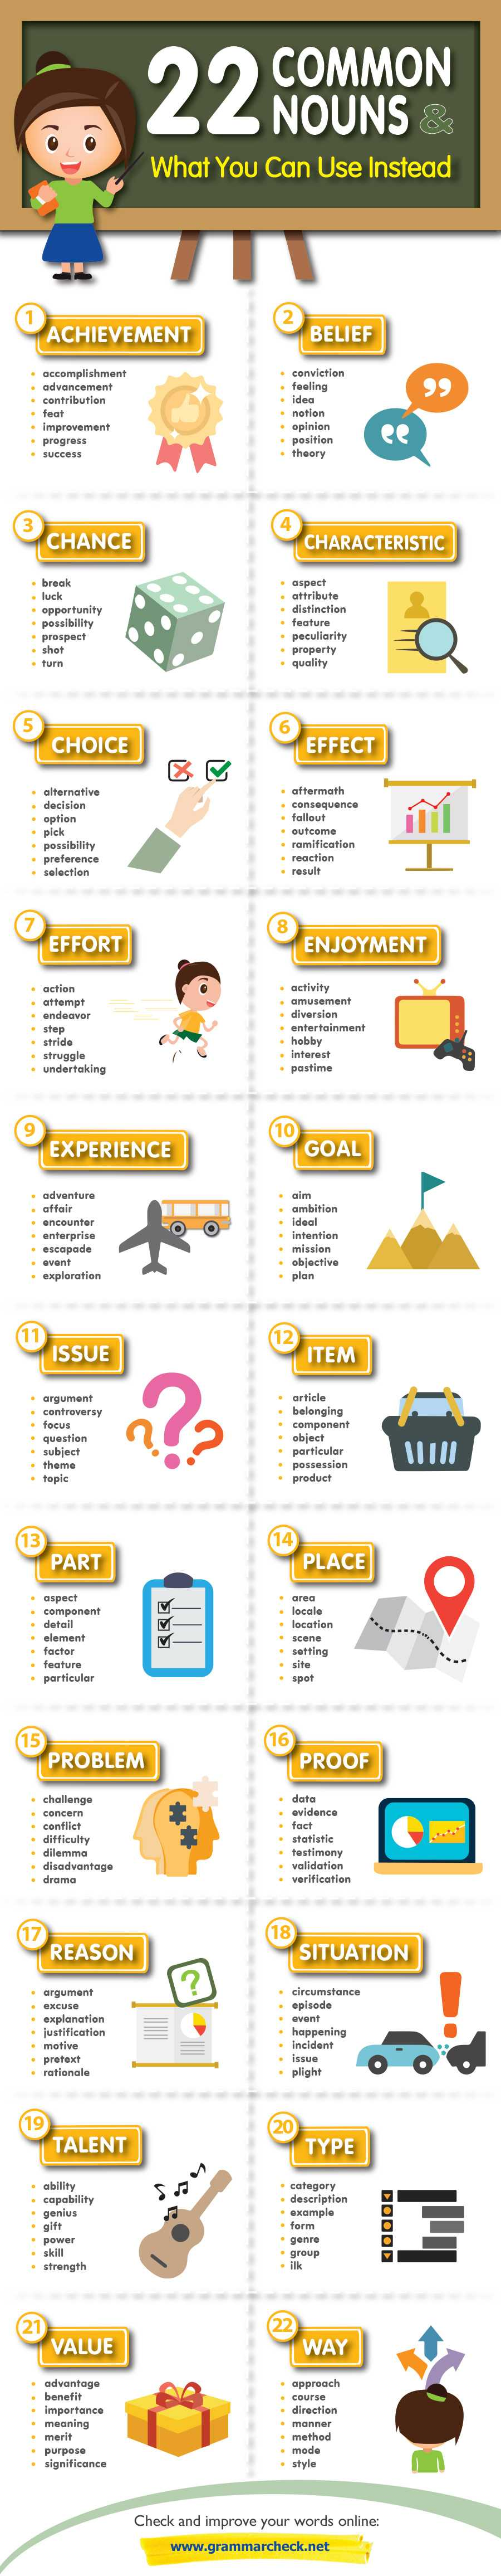 22 Common Nouns & What You Can Use Instead